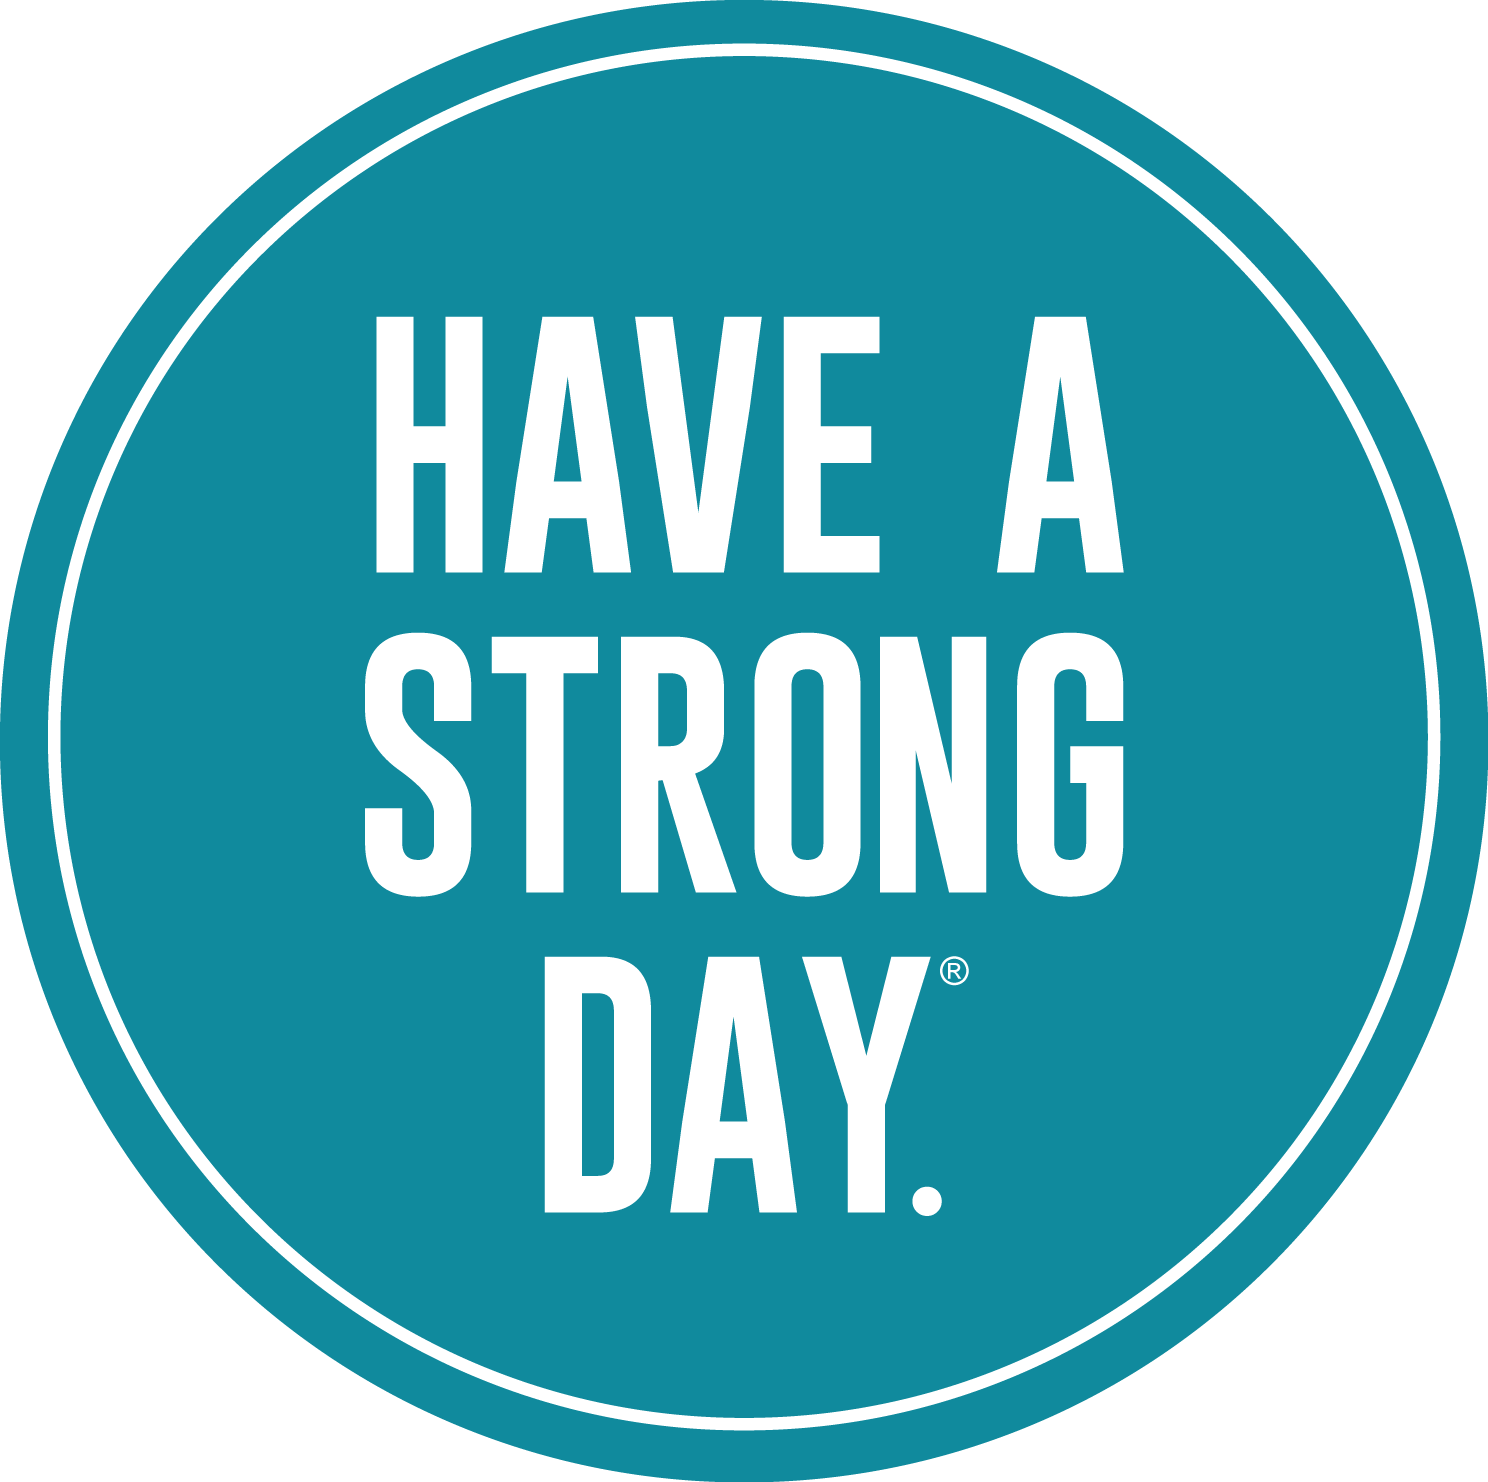 HAVE A STRONG DAY.